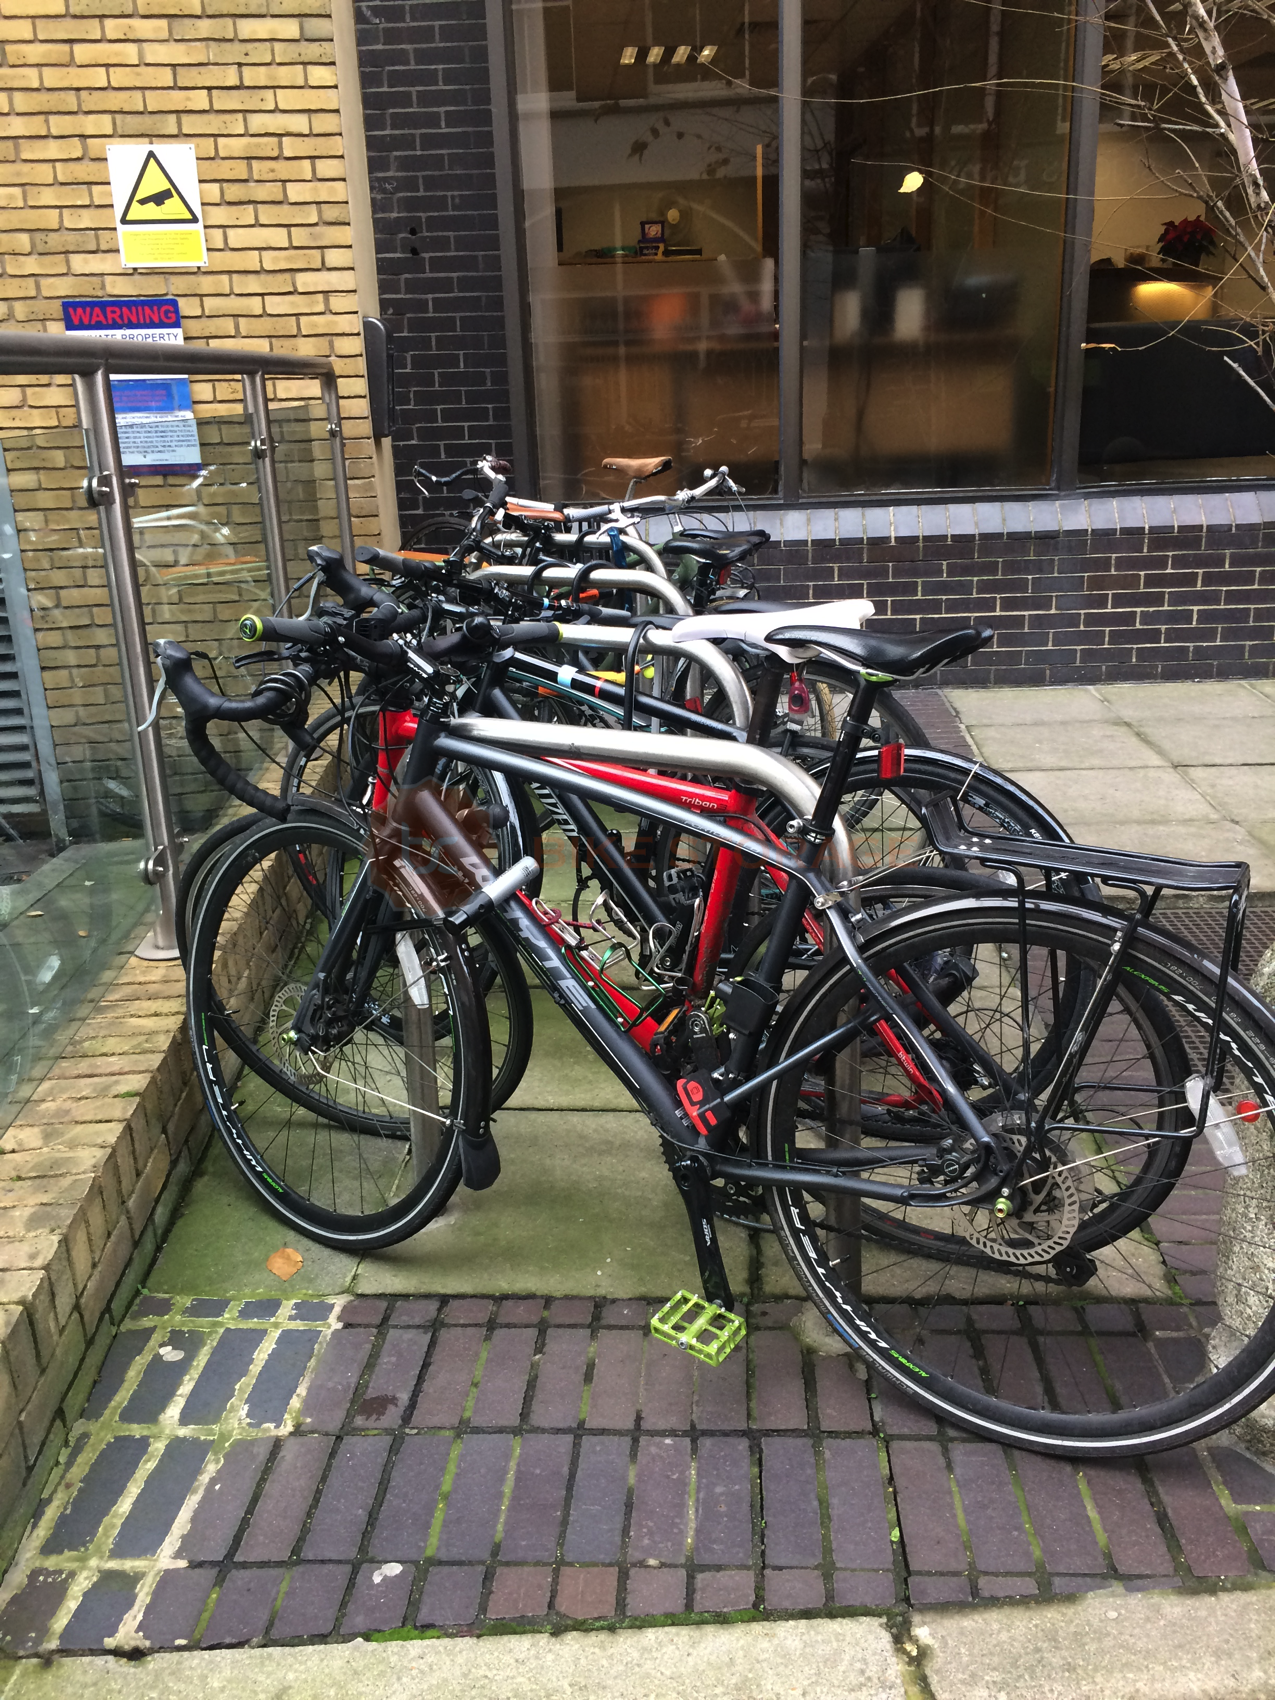 Cycle stand photo